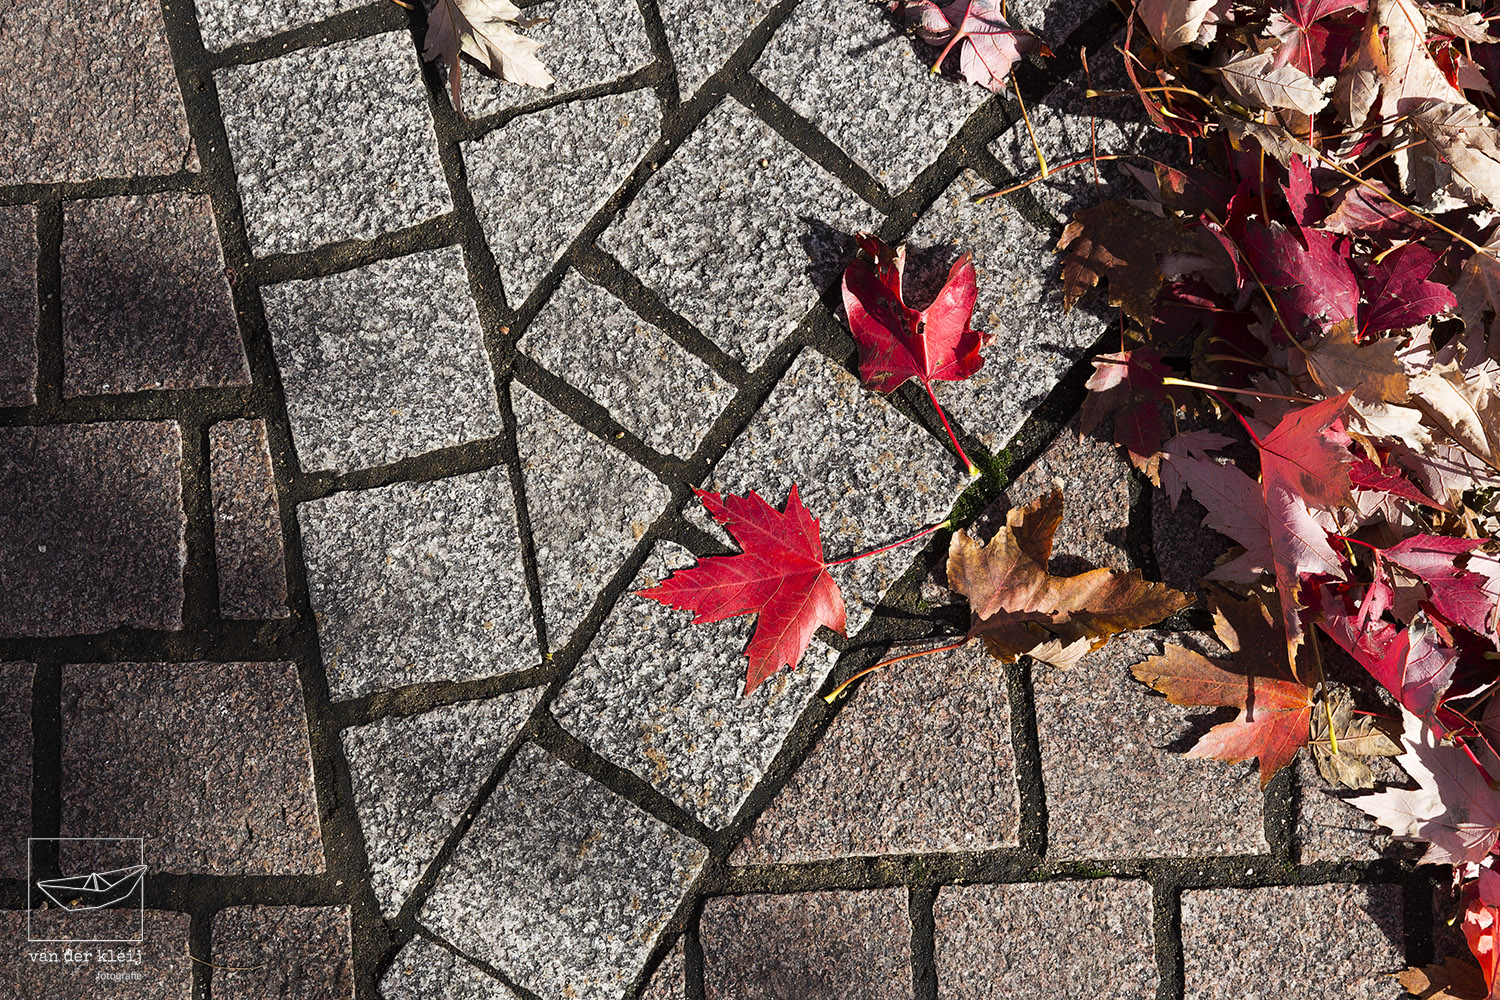 Detail of the maple leaf mosaic of the Water's Edge Promenade